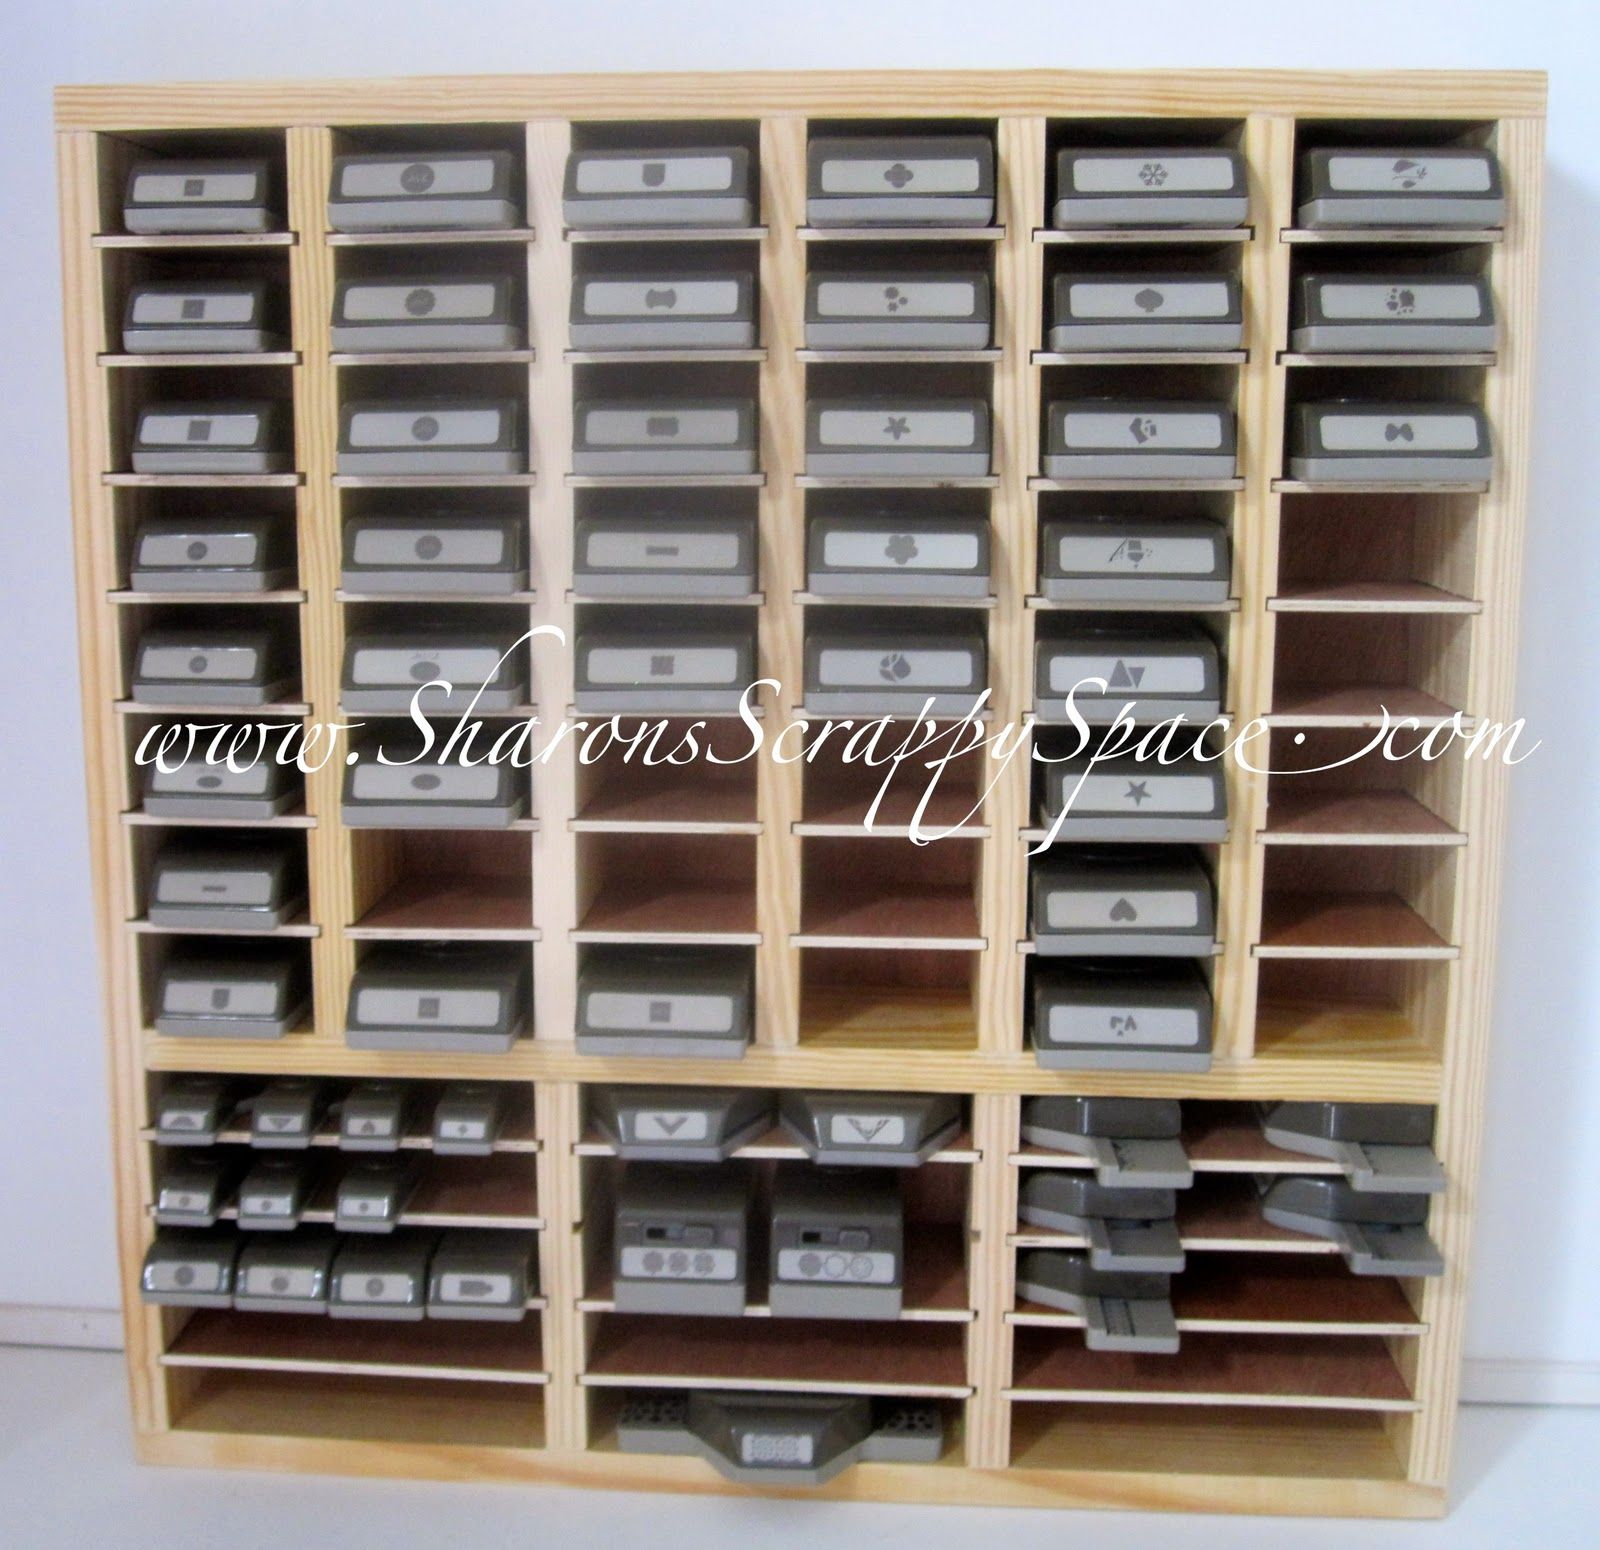 Sharon S Scrappy Space Punch Storage Units For Sale Punch Storage Scrapbook Storage Craft Room Decor